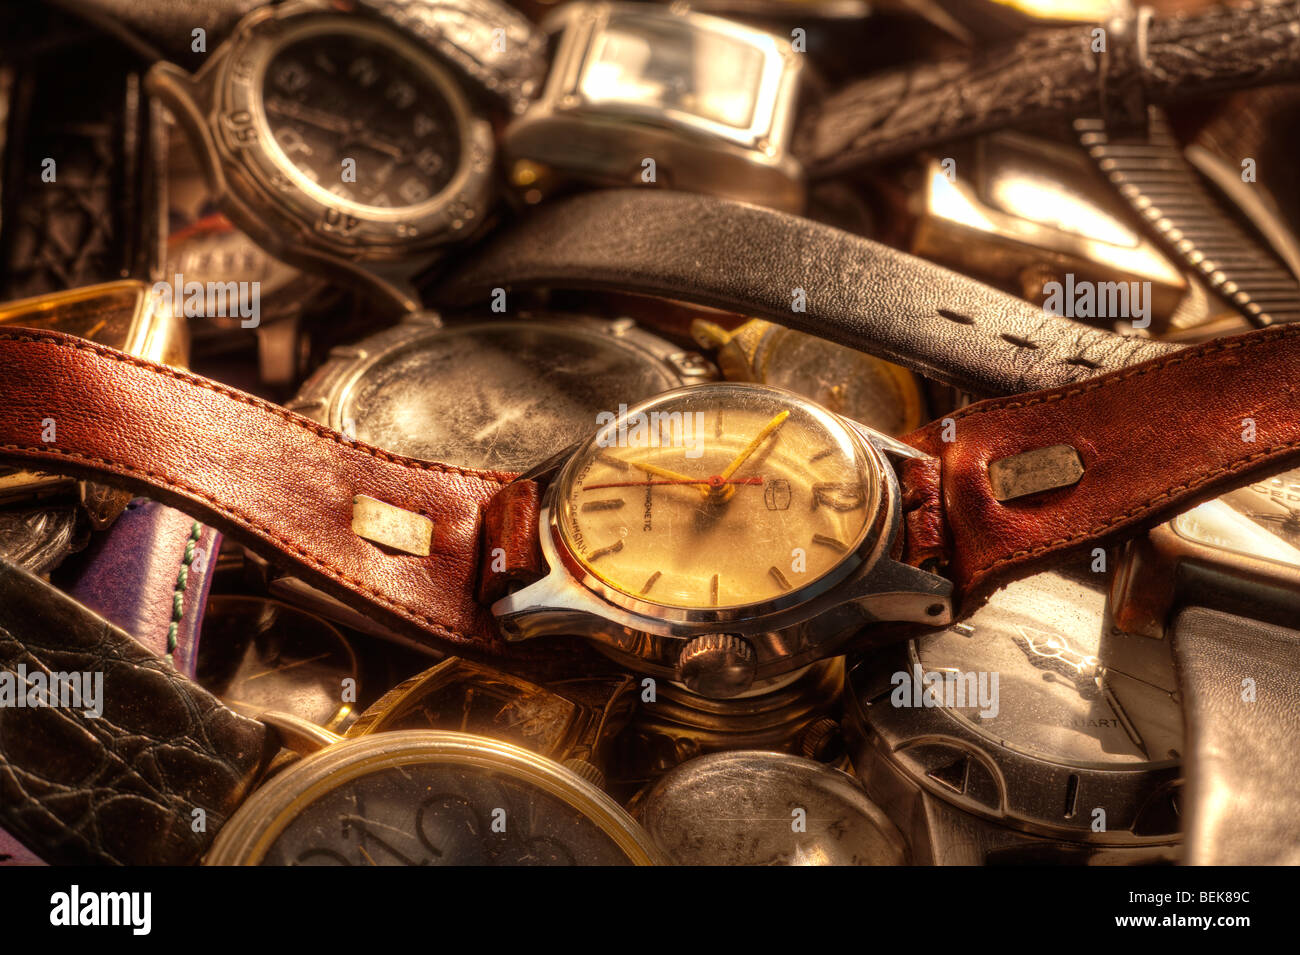 Old watches - Stock Image